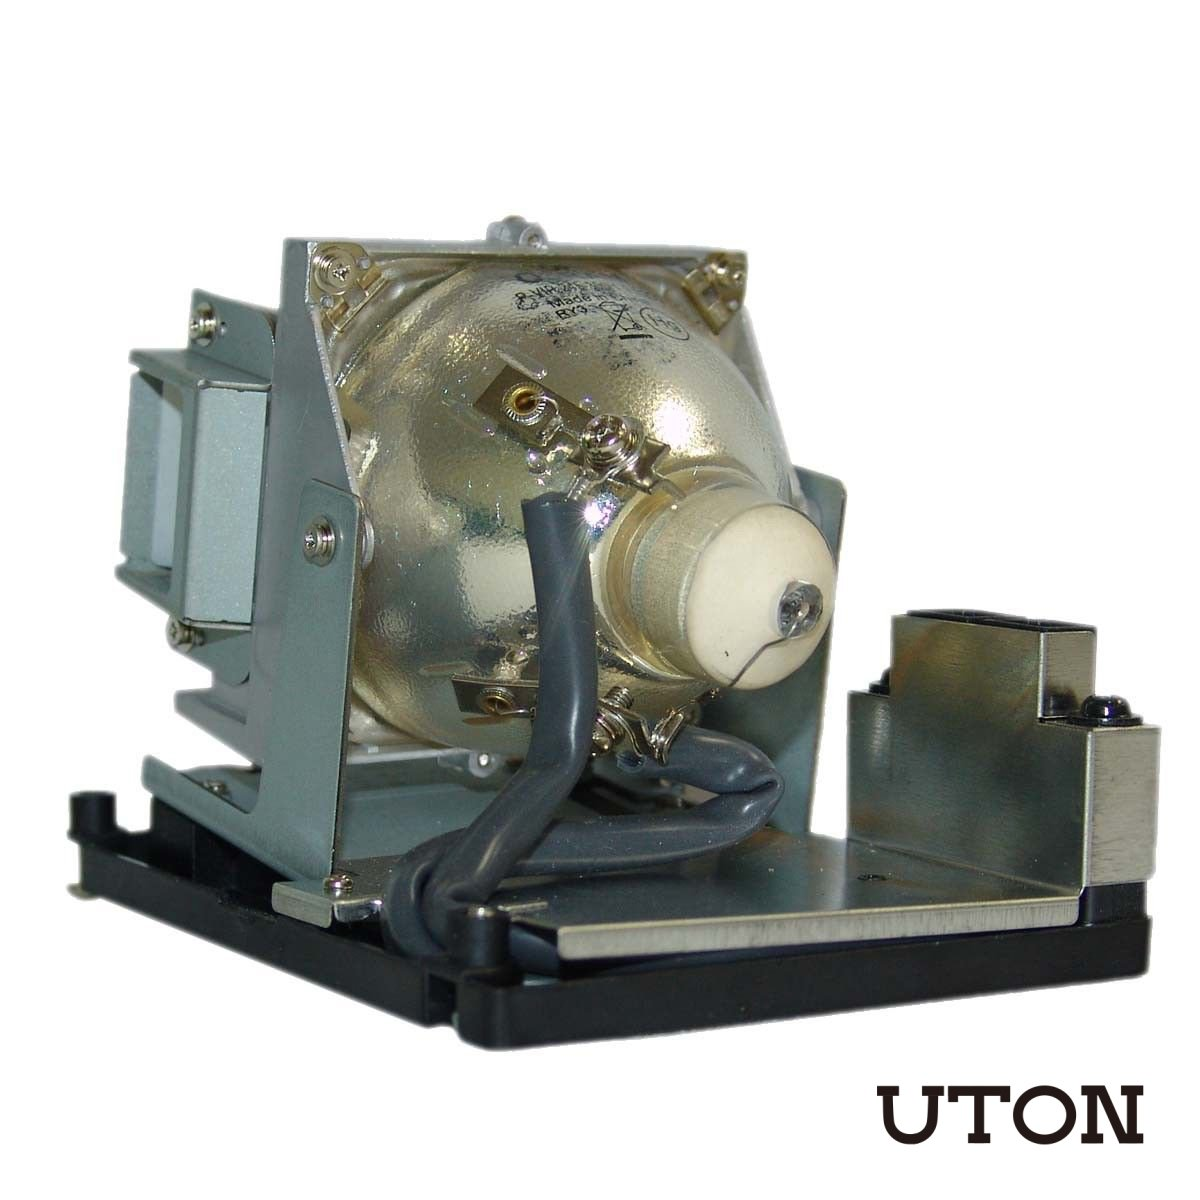 5811116701-SVV Replacement Projector Lamp for VIVITEK D963HD D965 Projector(Uton) by Uton (Image #3)